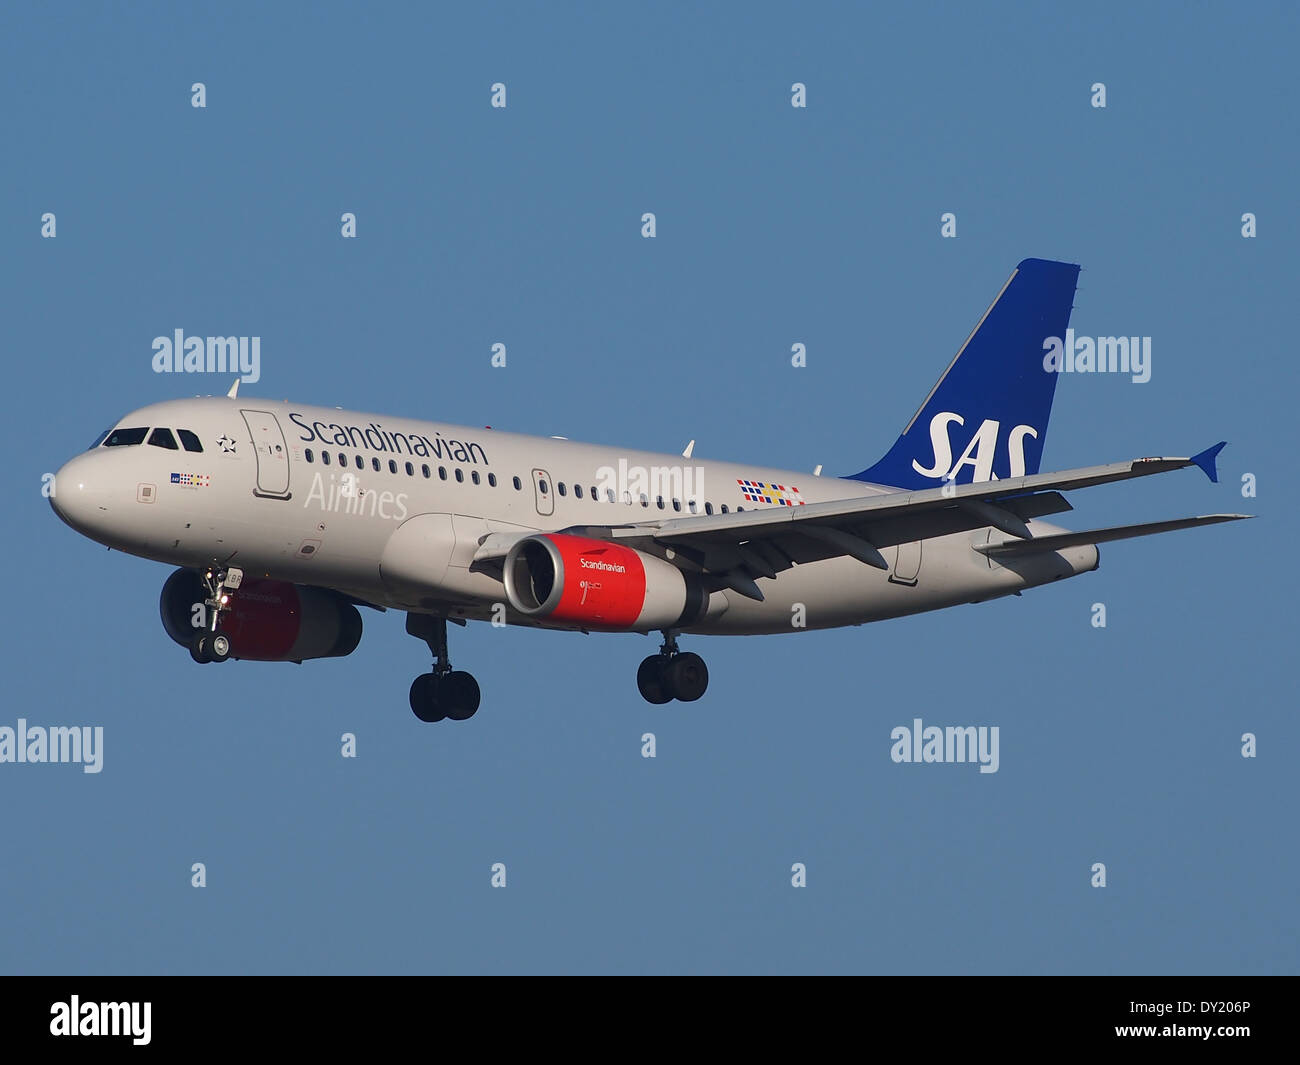 OY-KBR SAS Scandinavian Airlines Airbus A319-131, landing on Schiphol, pic-1 - Stock Image